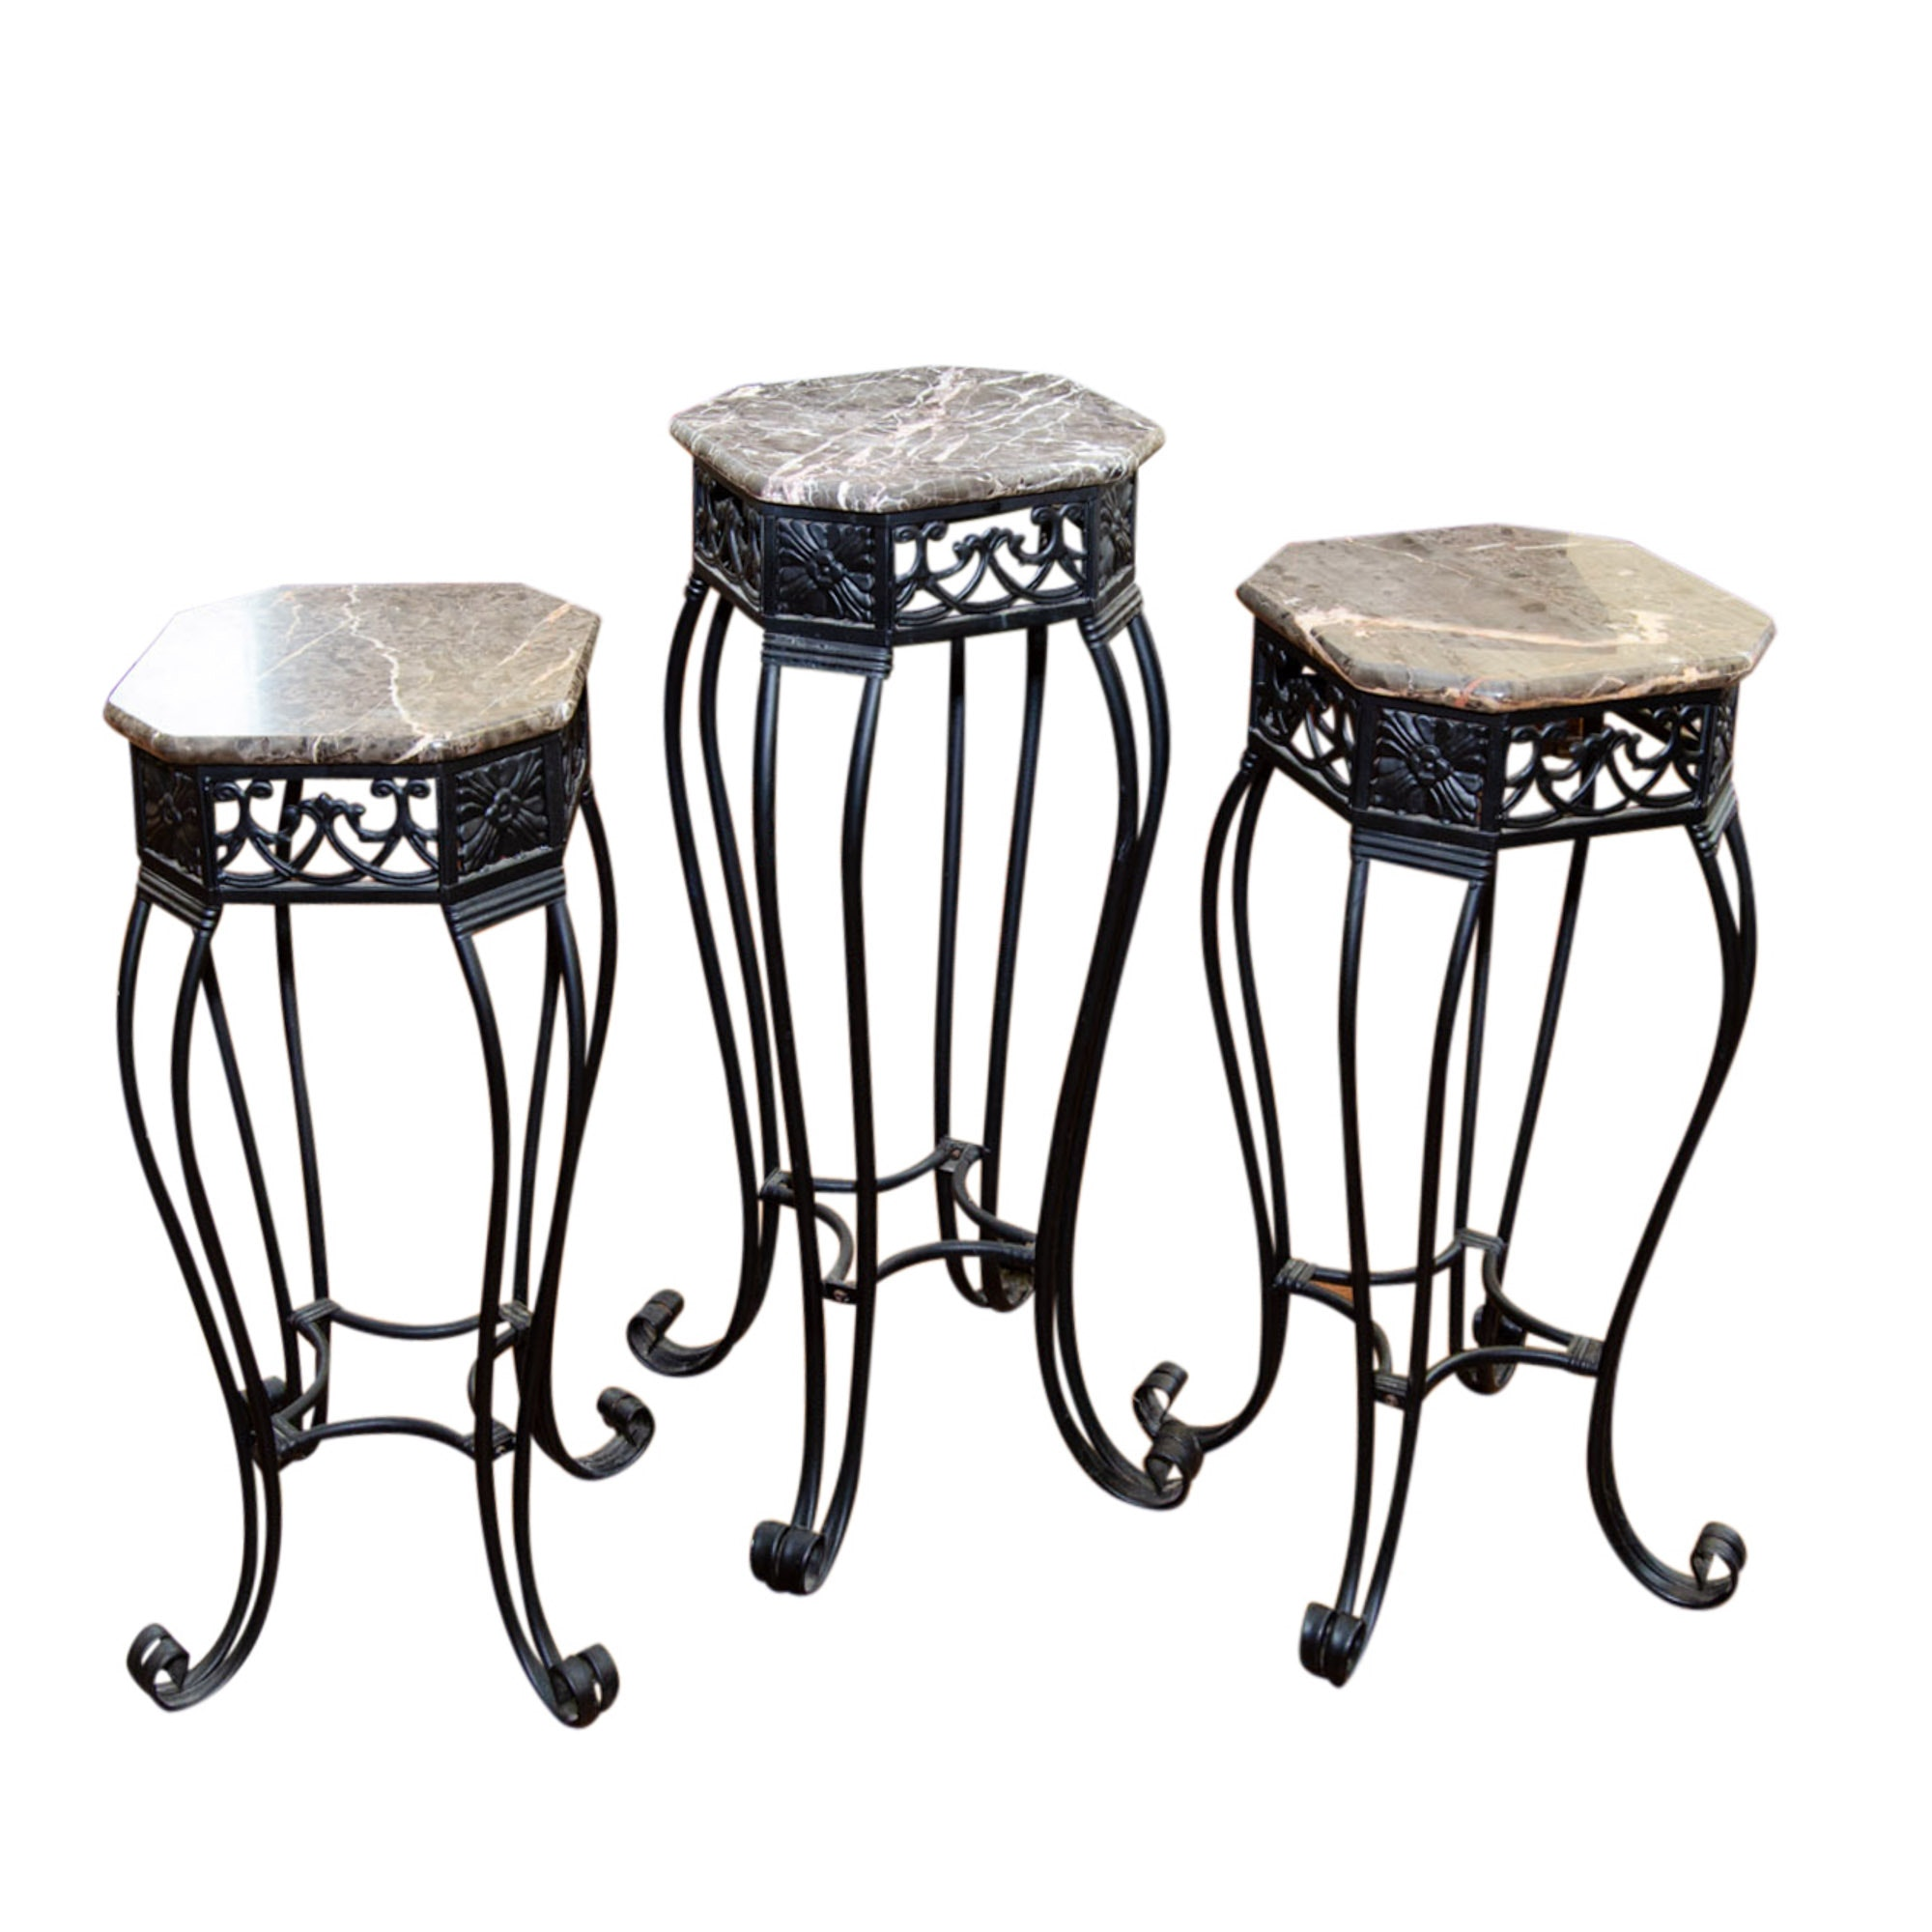 Assortment of Three Marble Top Accent Tables